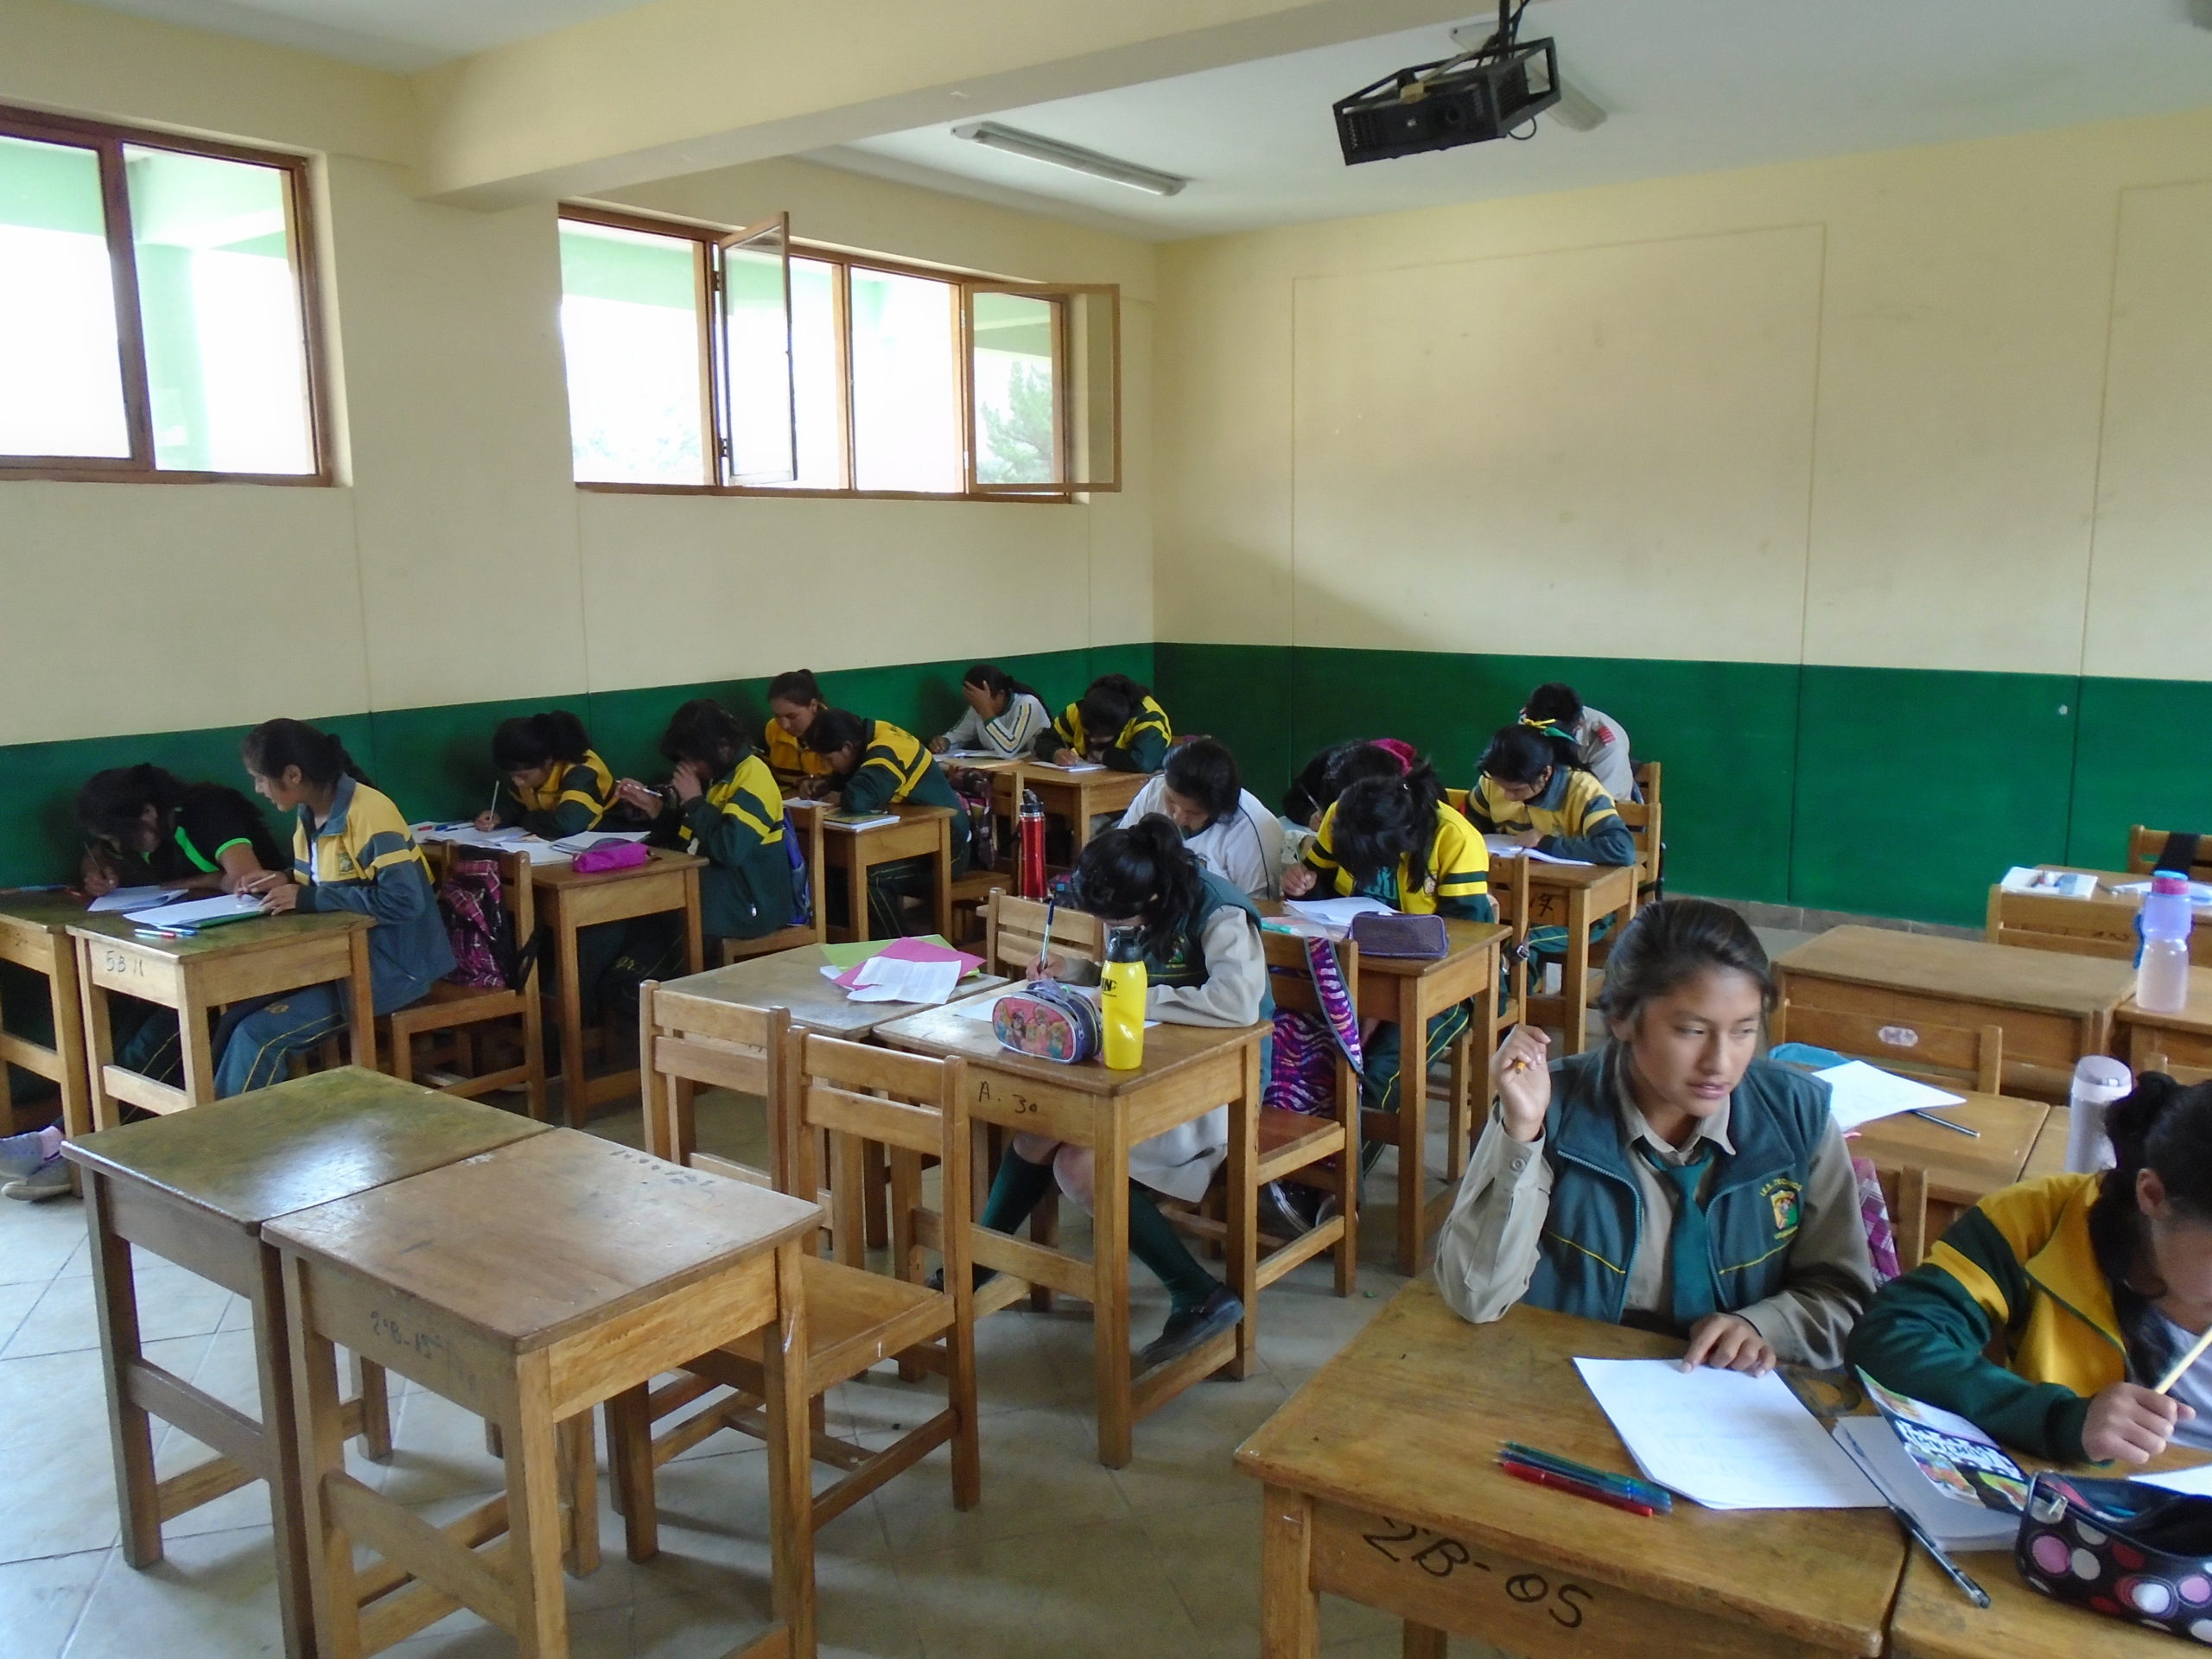 Picture of Peruvian students in a classroom with bare walls and wood desks.